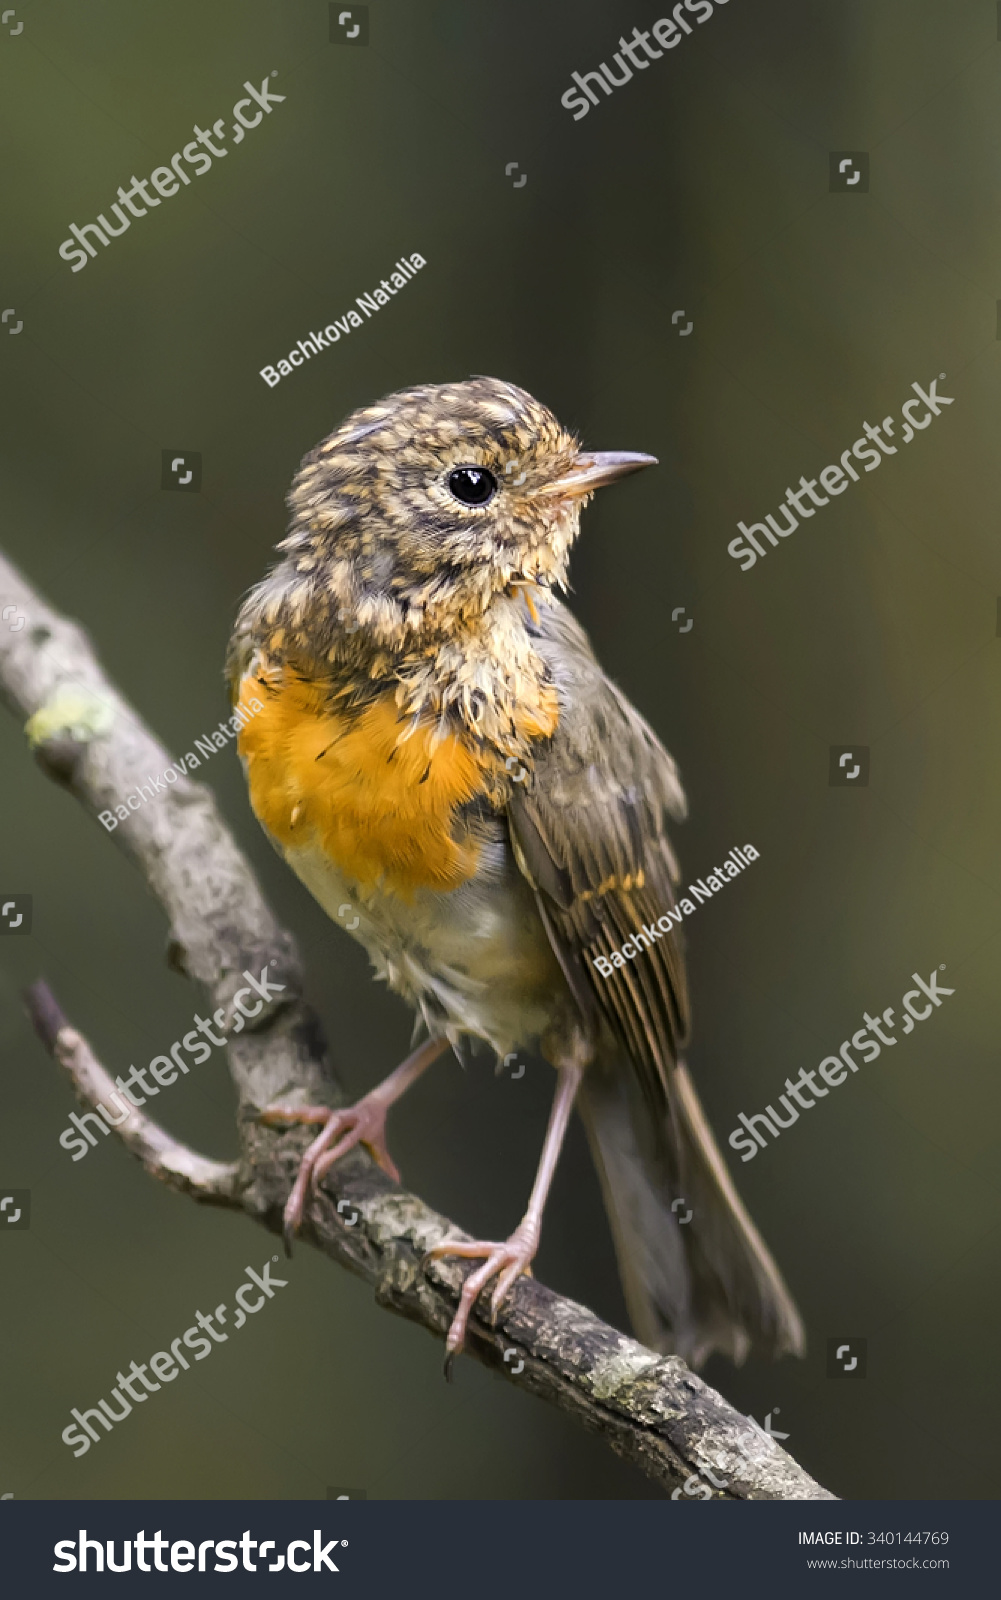 a small bird of the Robin with a red breast on wood